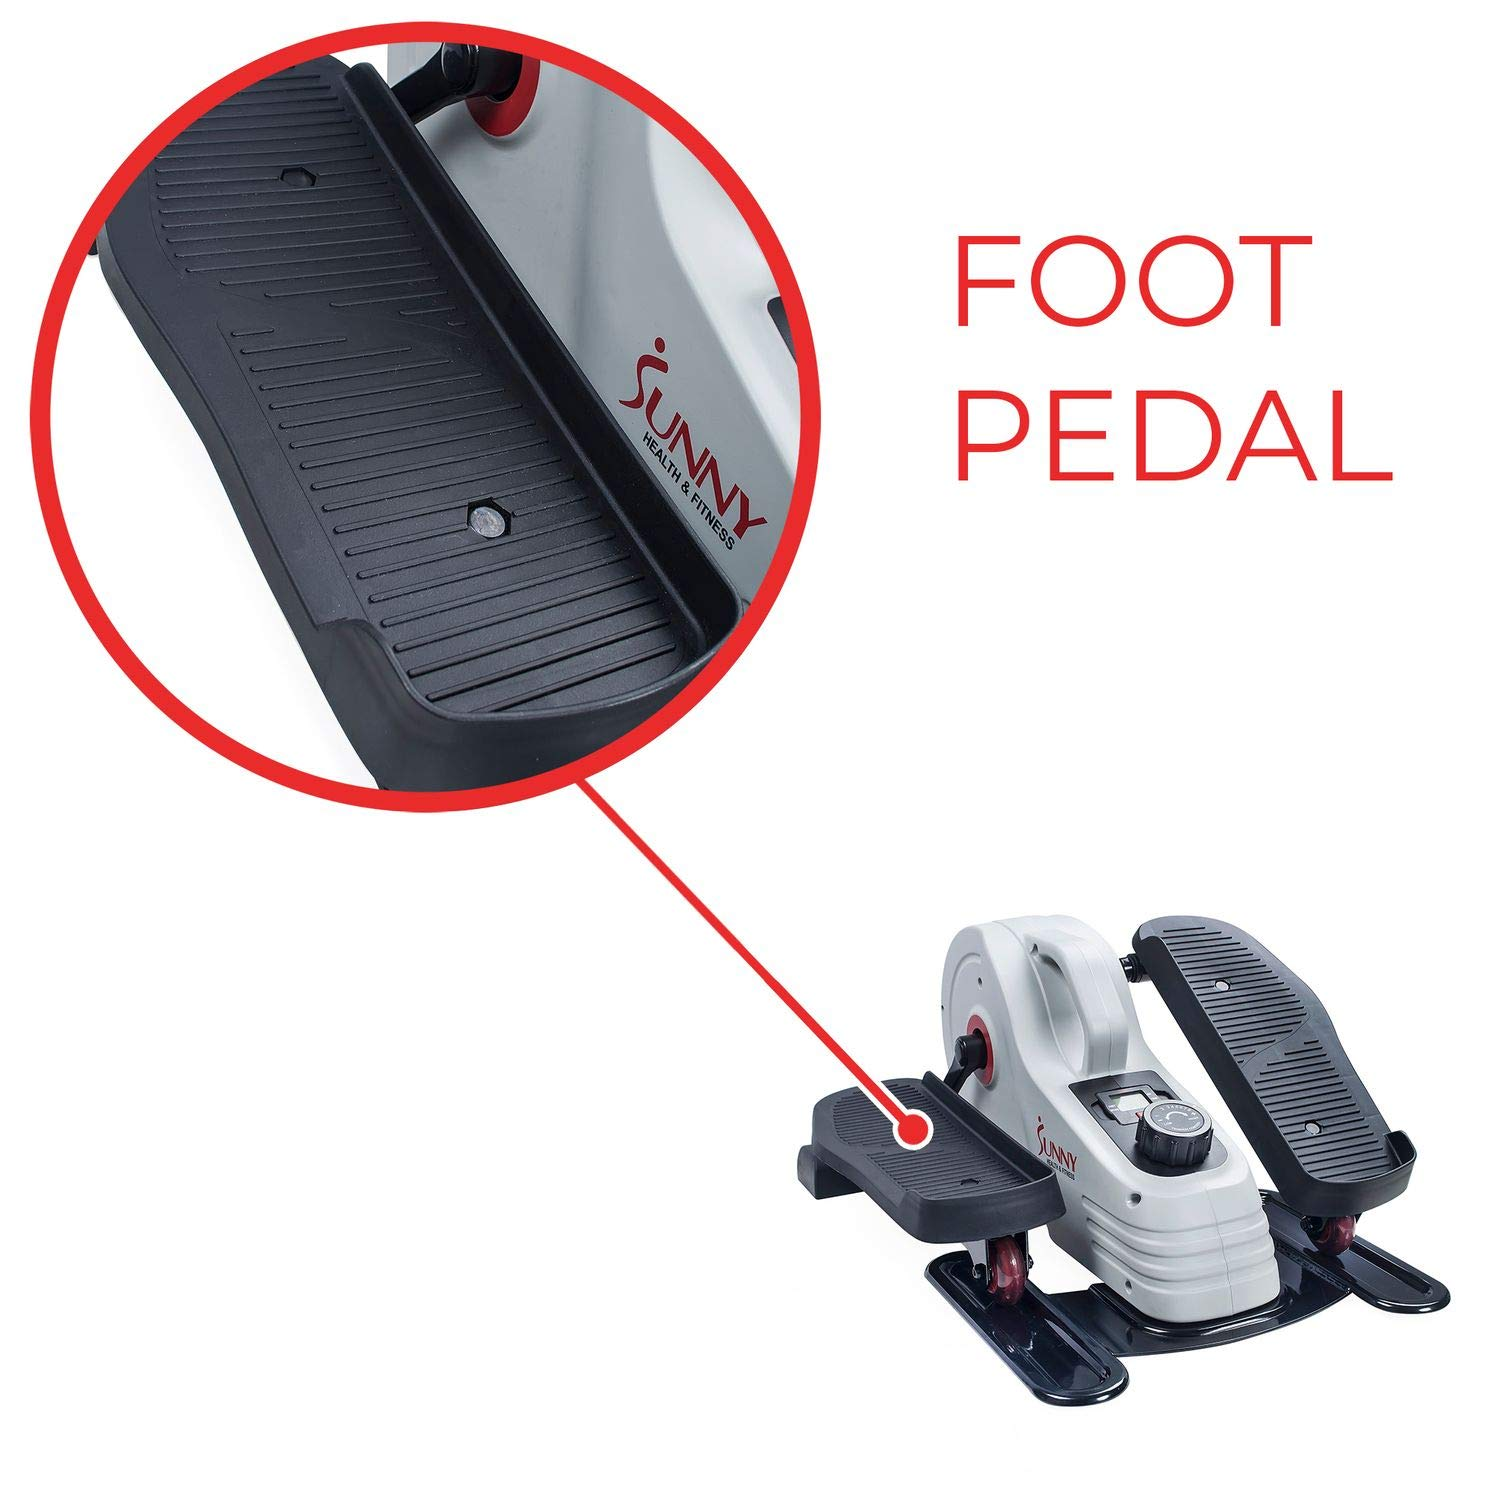 Sunny Health & Fitness Fully Assembled Magnetic Under Desk Elliptical - SF-E3872 by Sunny Health & Fitness (Image #8)